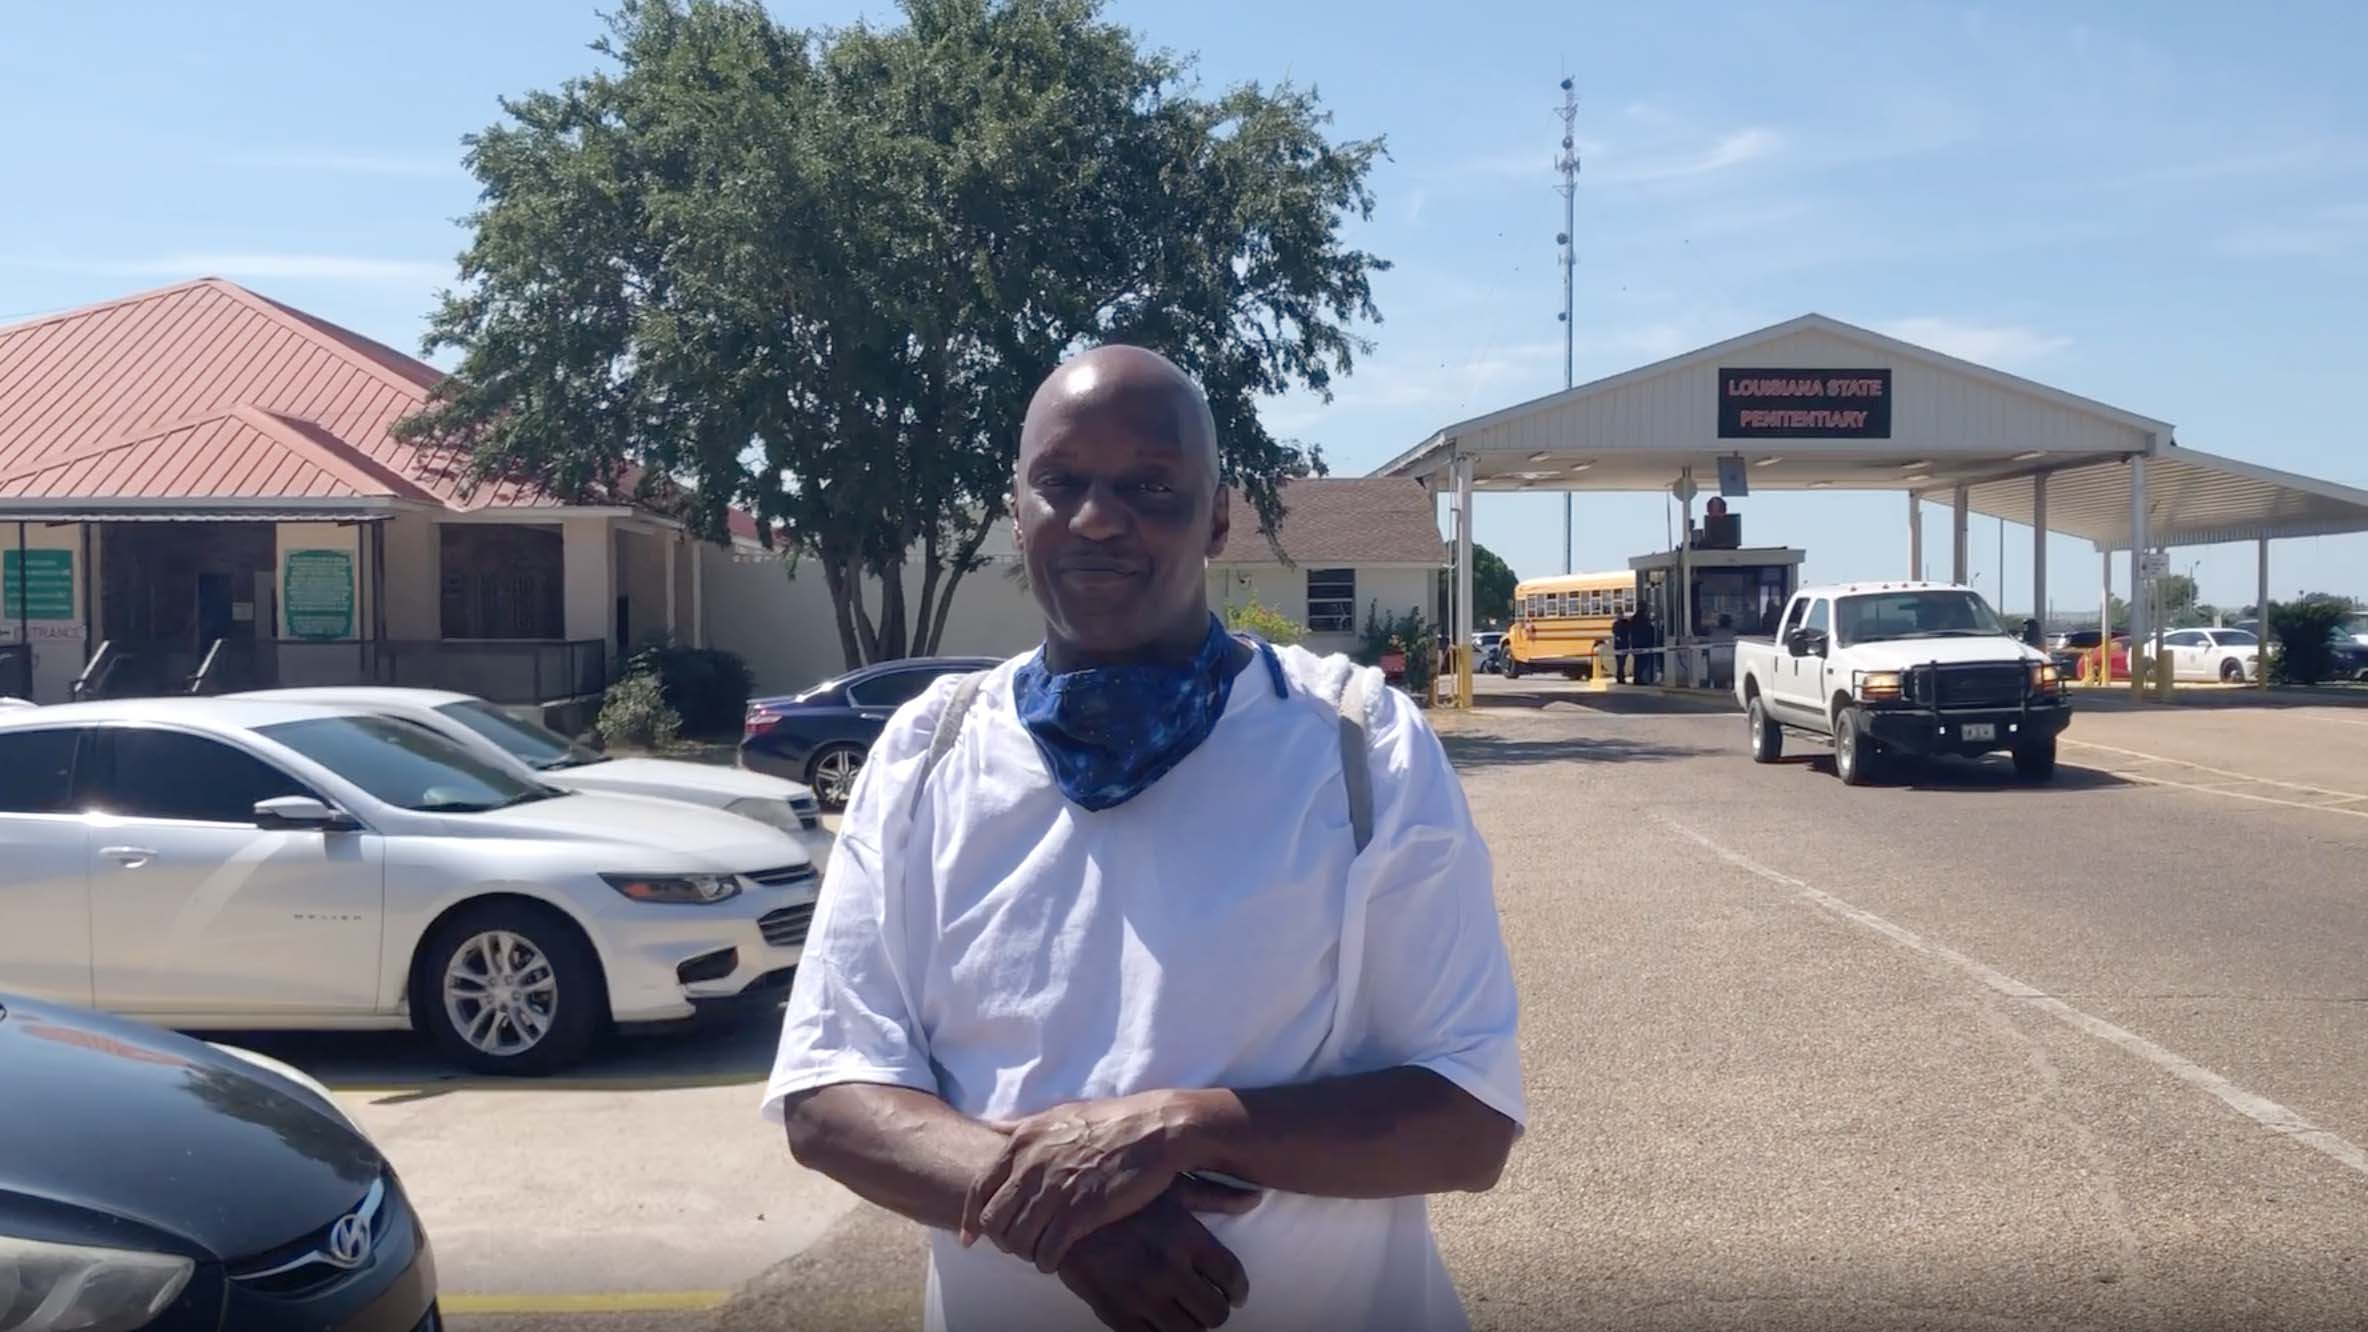 Derek Harris was freed this week after spending nearly a decade in prison for selling marijuana. (The Promise of Justice Initiative)